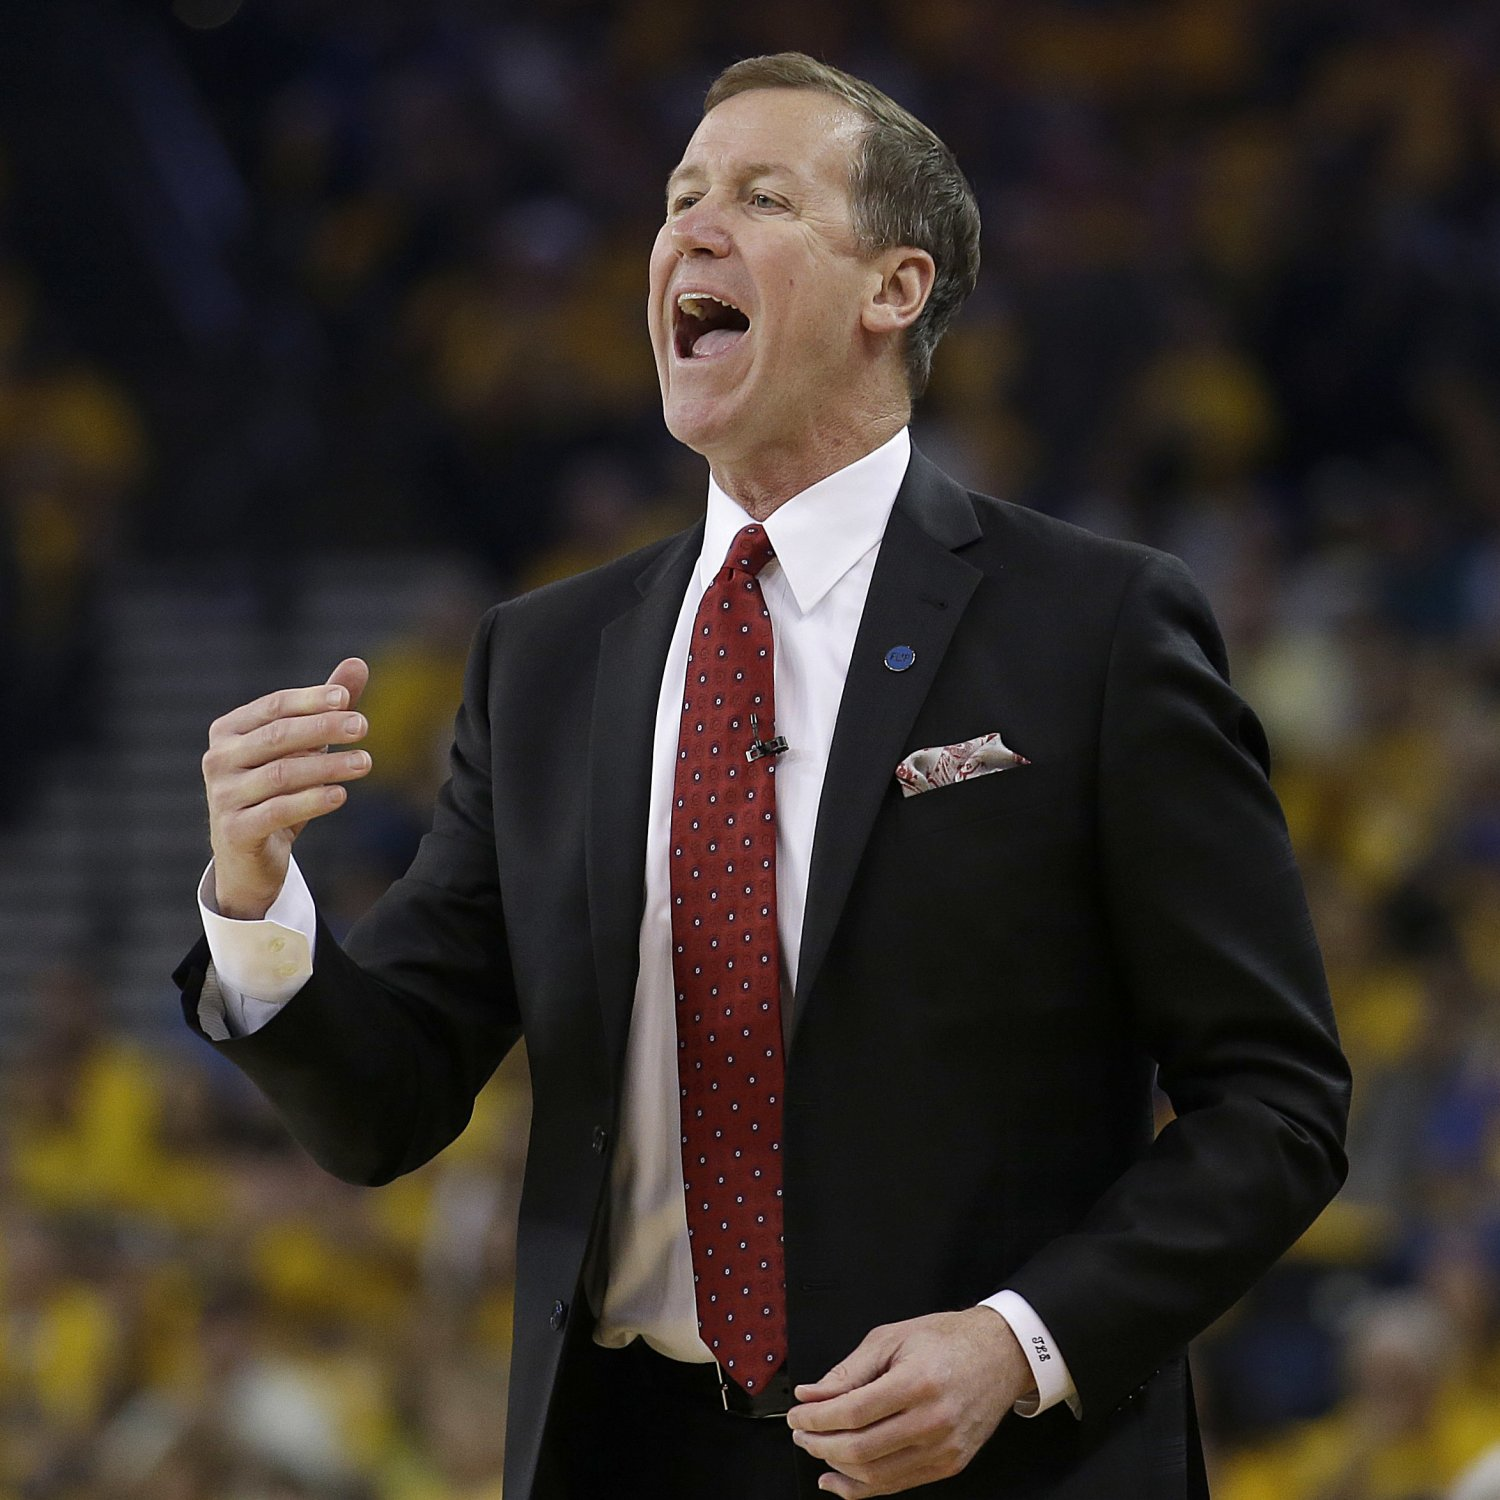 Portland Trail Blazers Contracts: Terry Stotts, Portland Trail Blazers Agree To New Contract